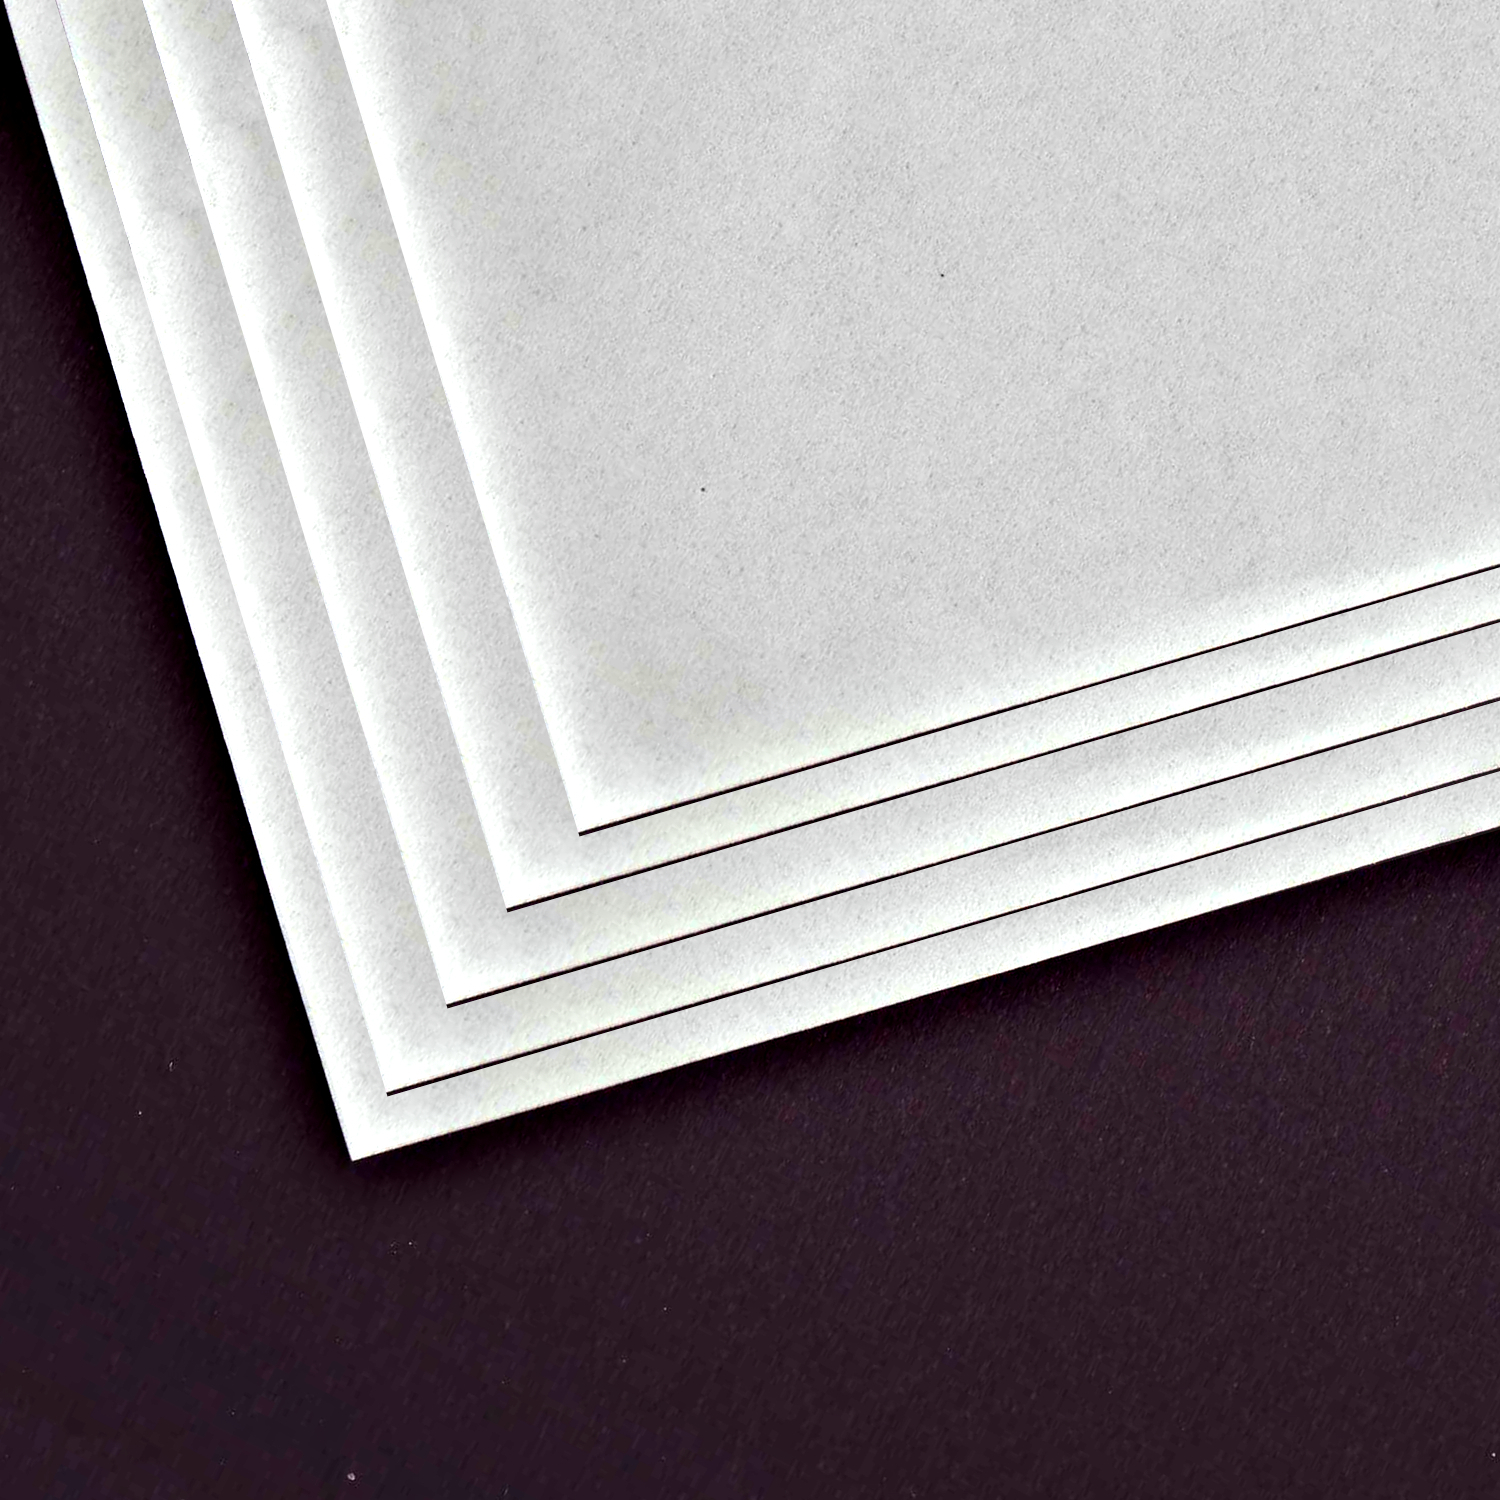 Alvaline Drafting Vellum 11X17 10 Sheets